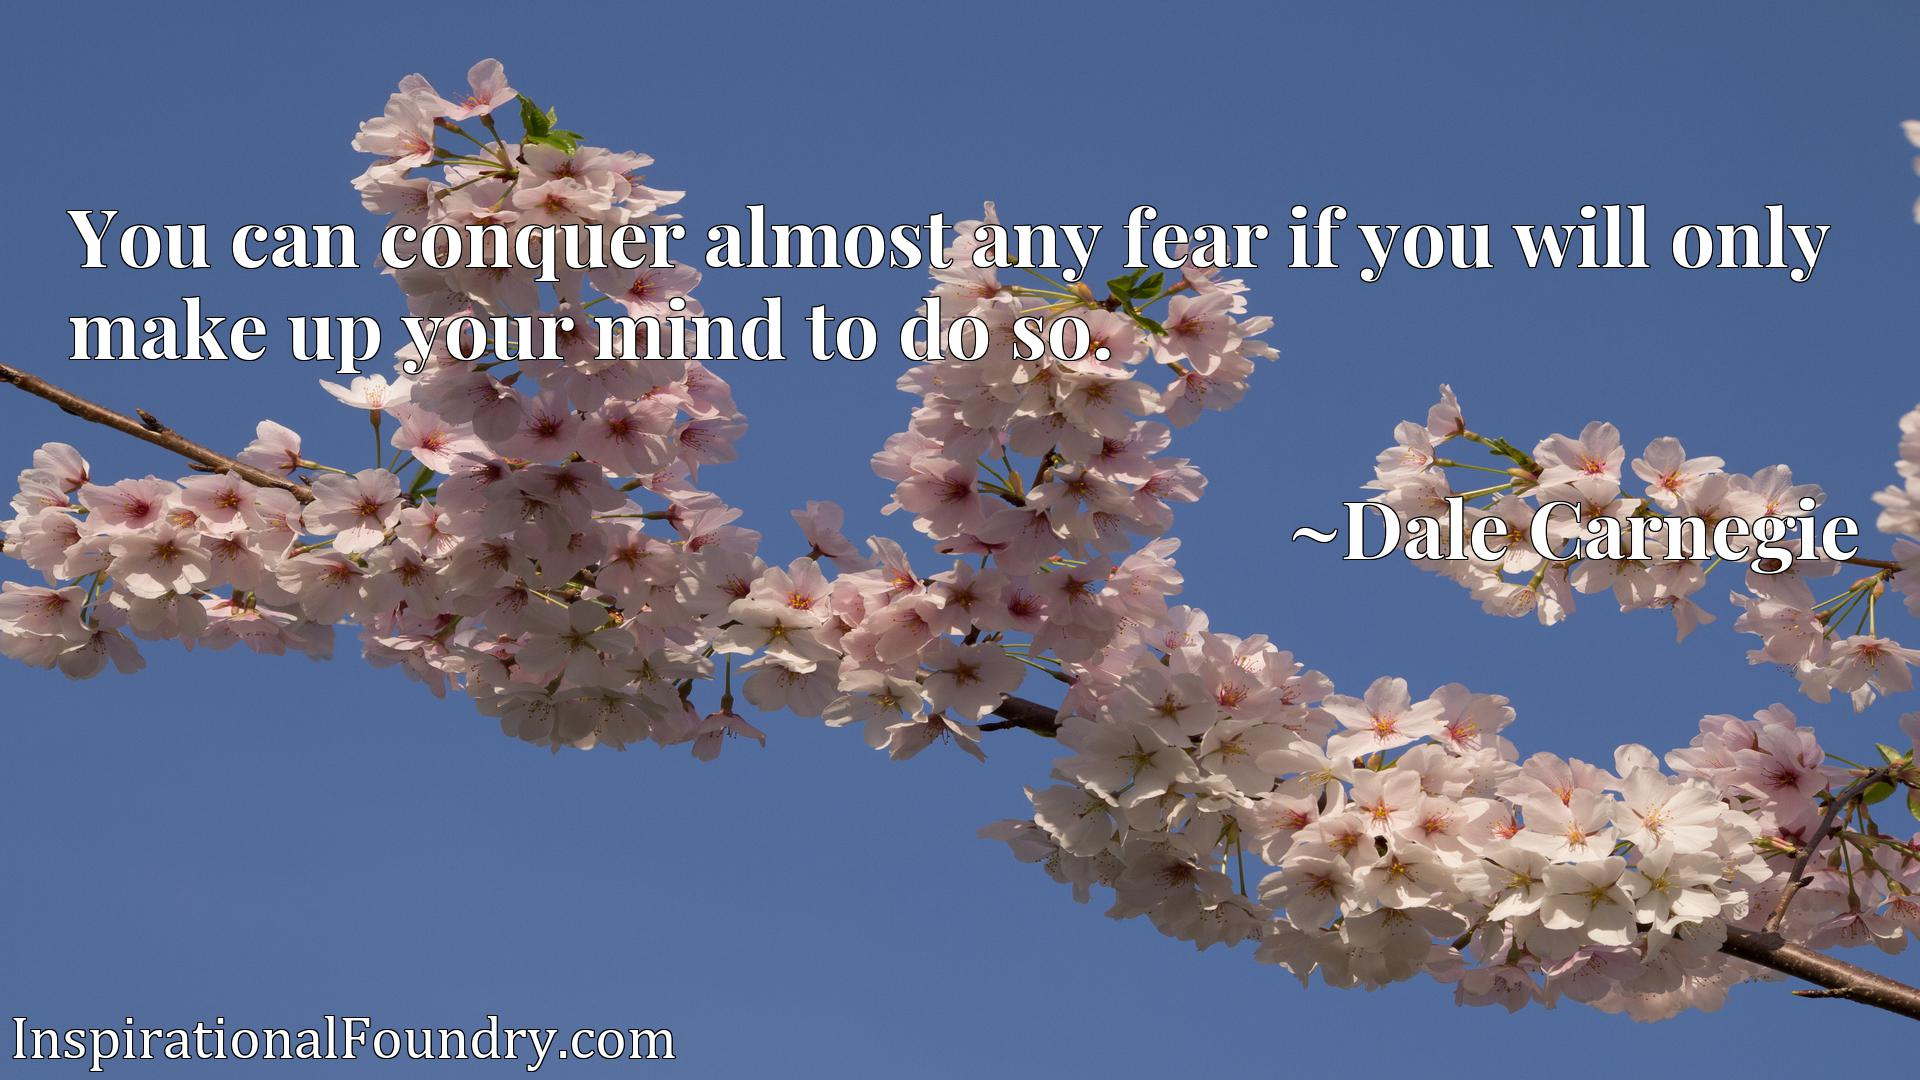 You can conquer almost any fear if you will only make up your mind to do so.